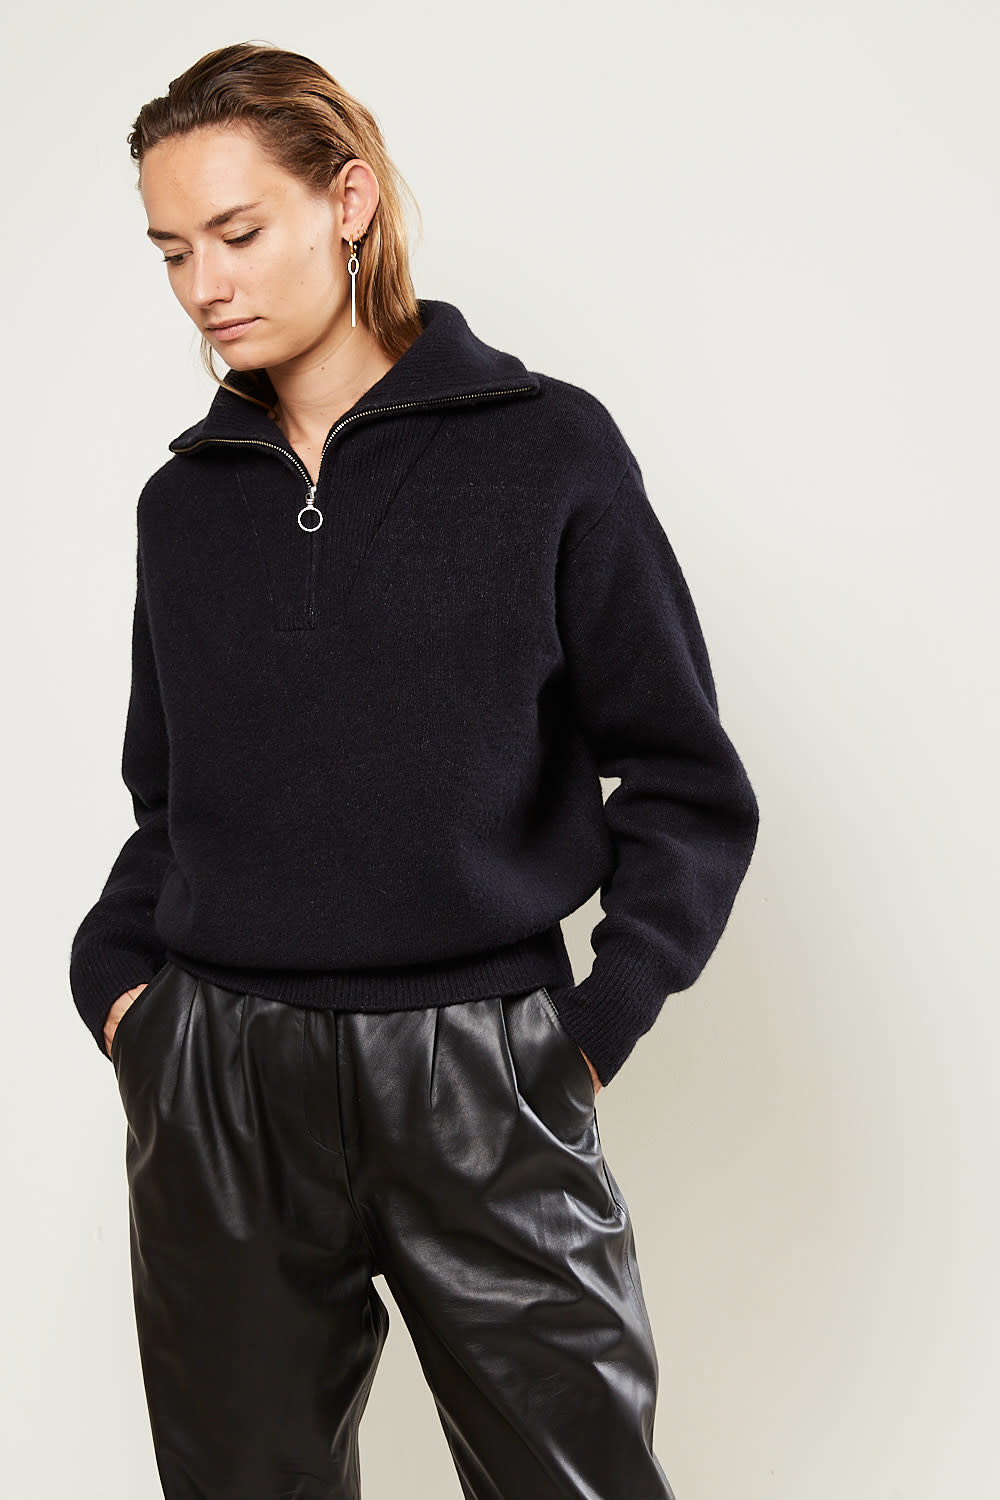 Etoile Isabel Marant Fancy boiled knit sweater